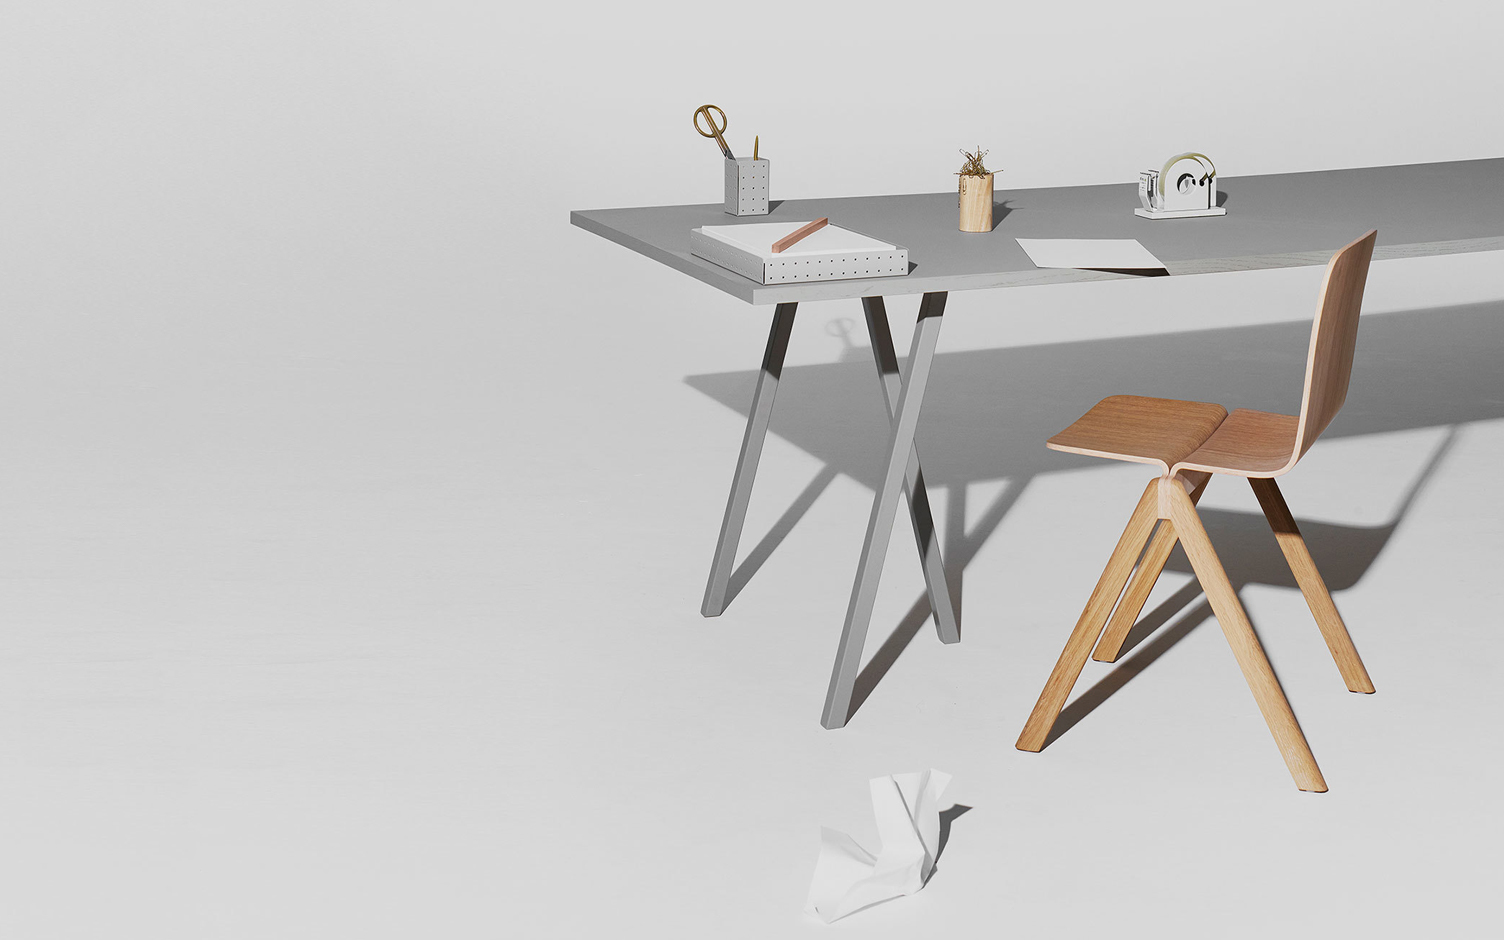 Tables & desks catalogue image